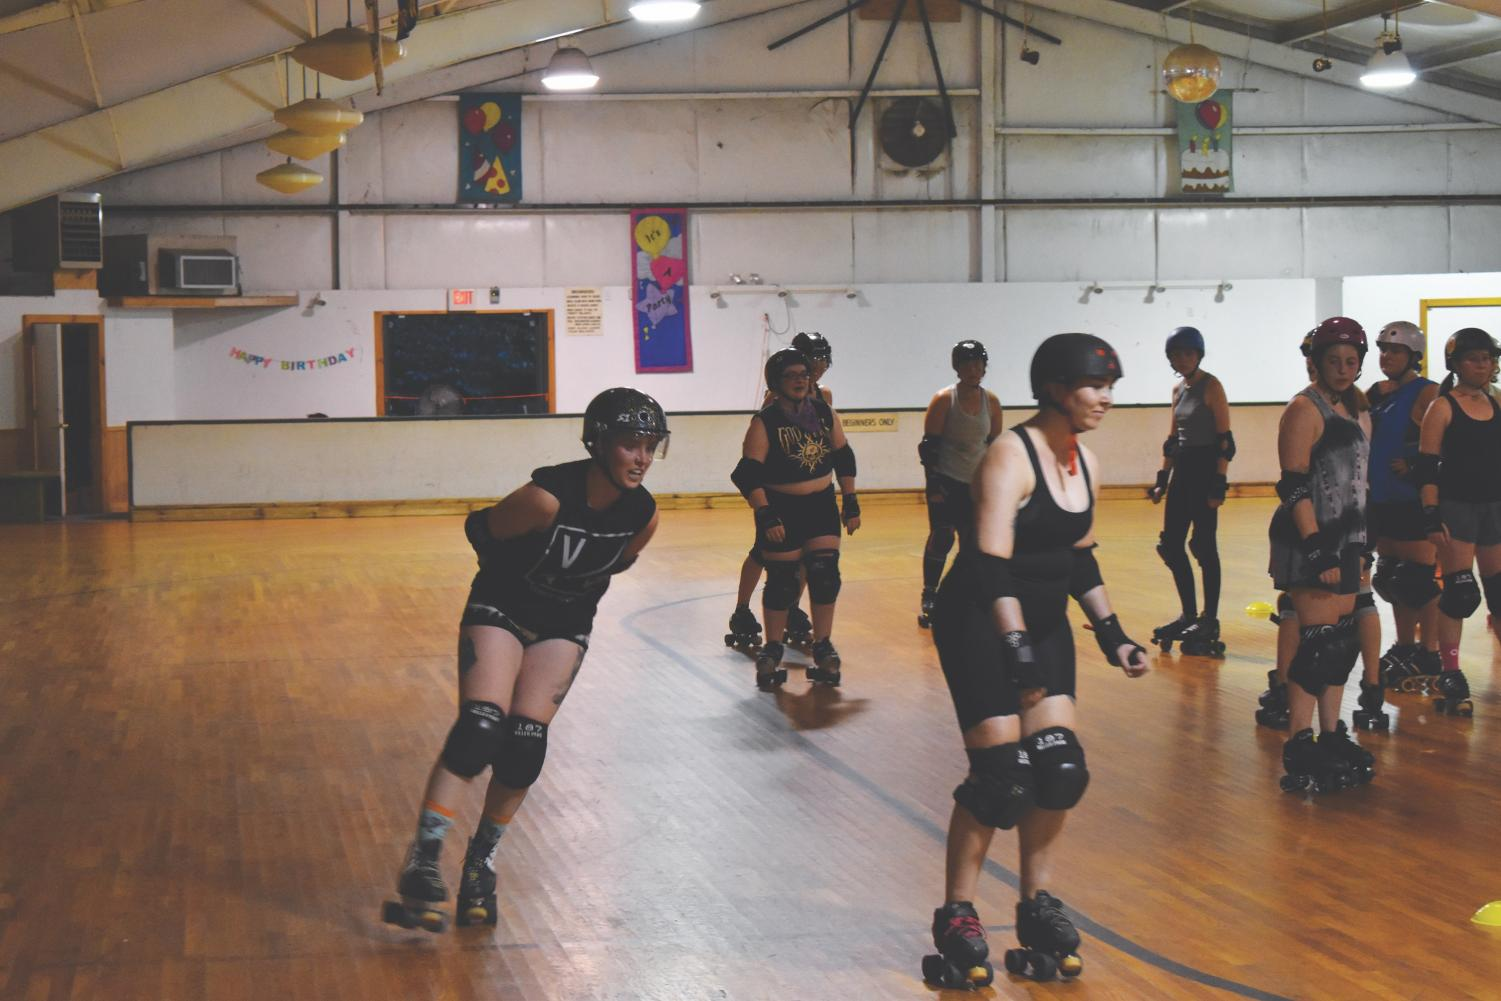 Members of the Appalachian Roller Derby skate around during a recent practice session.